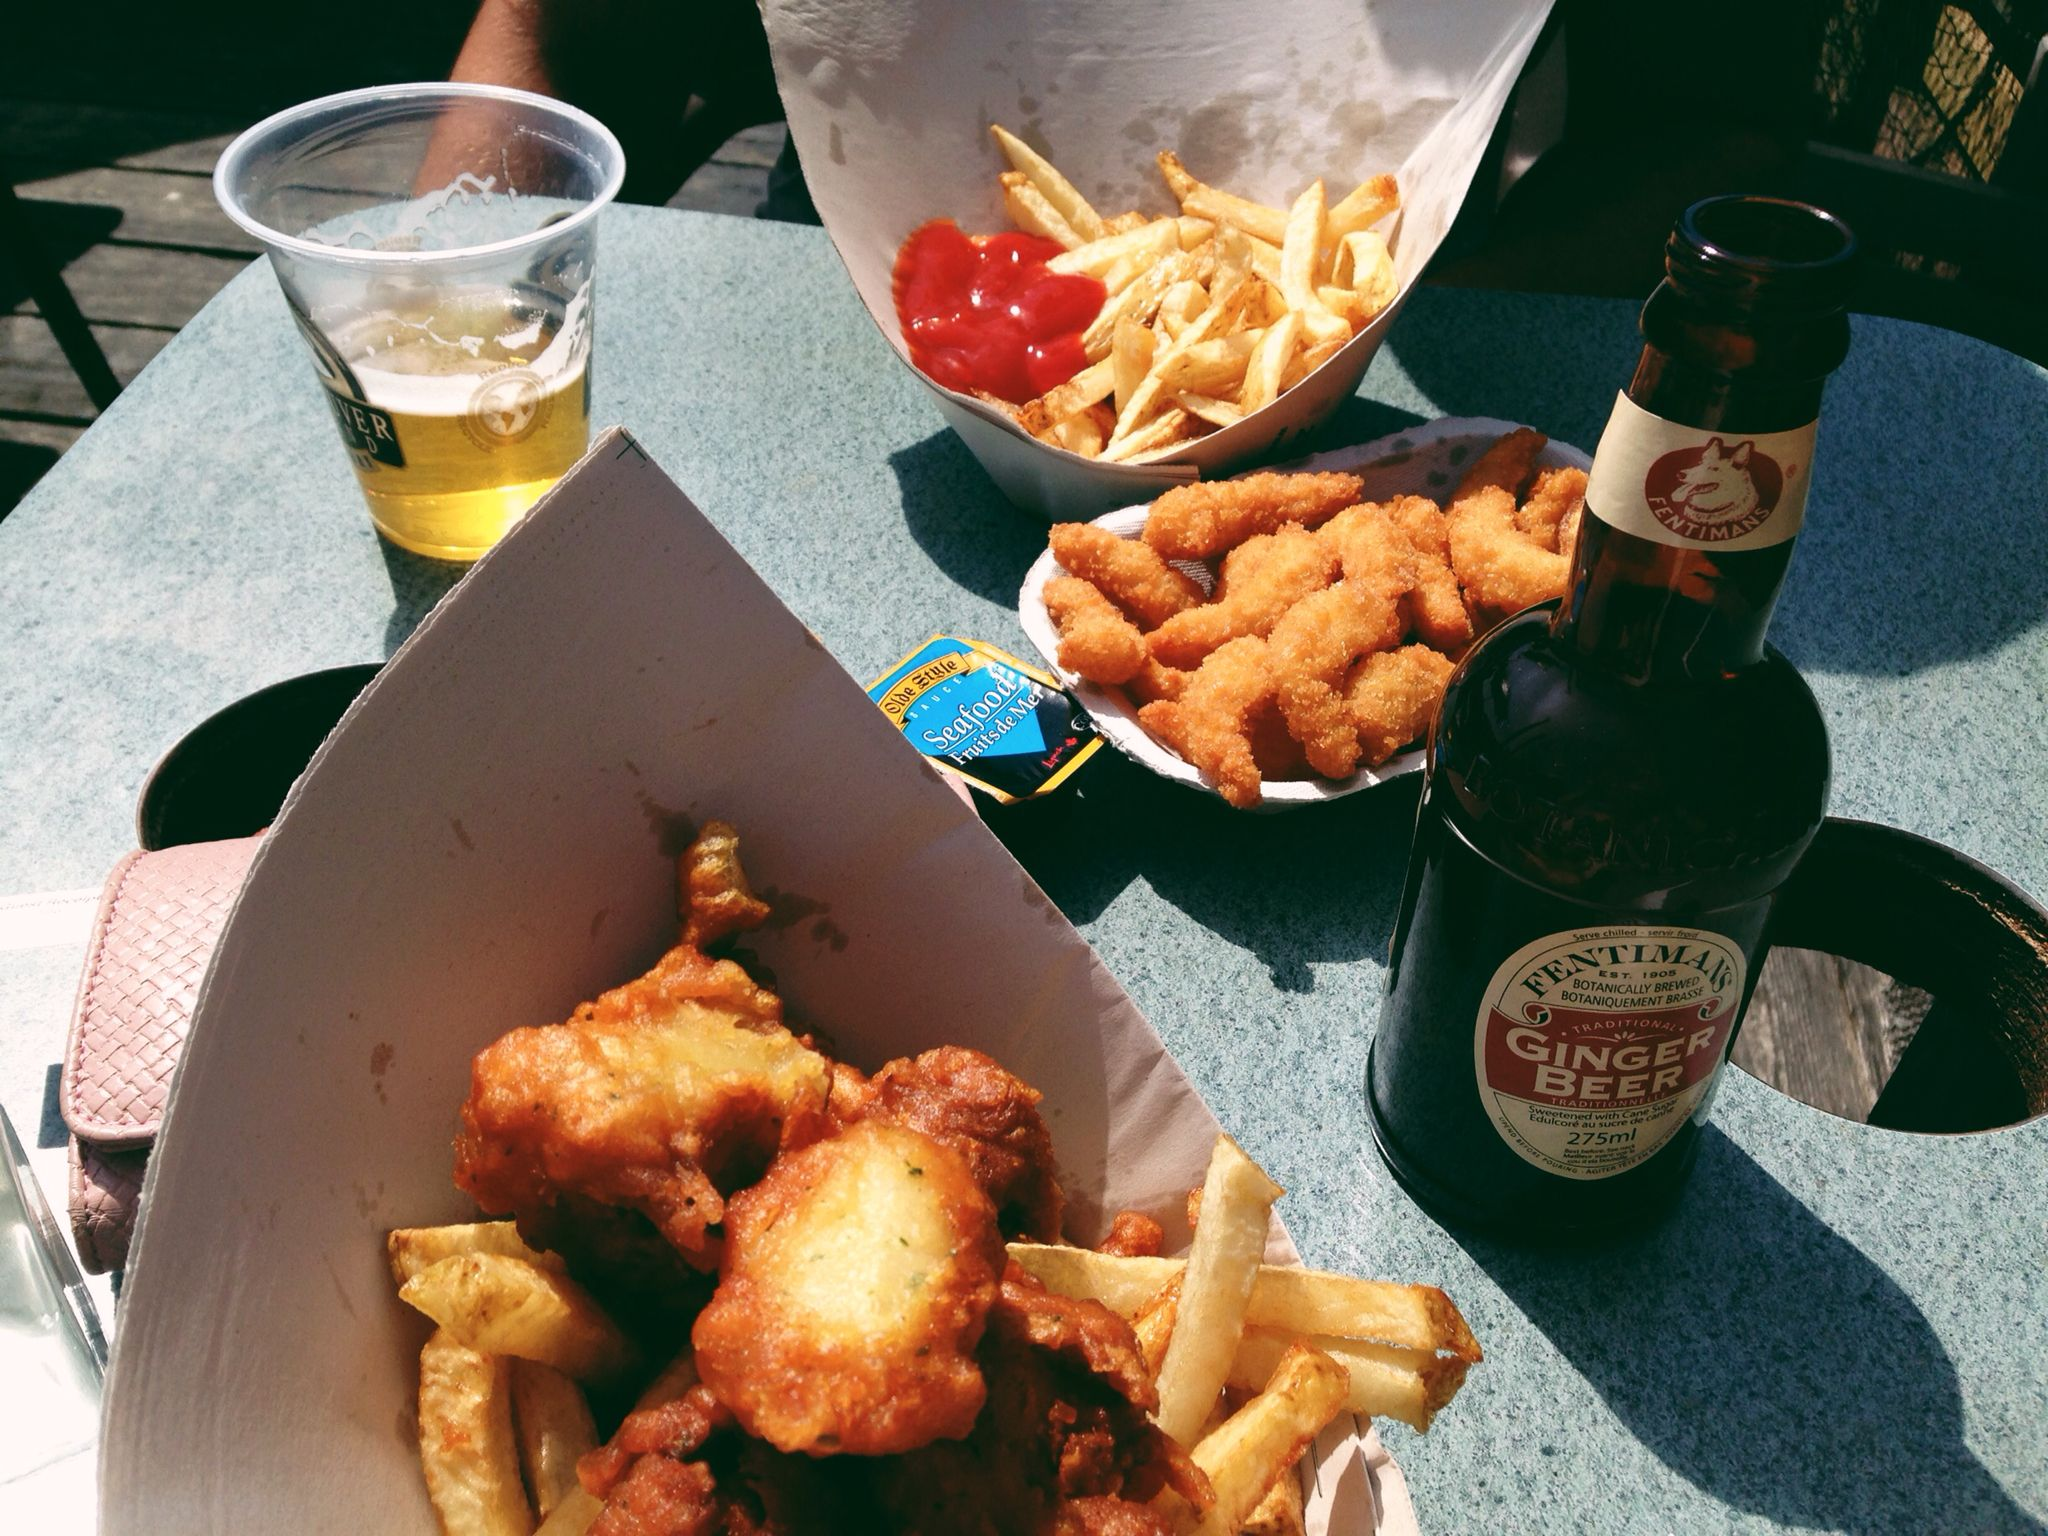 Dick's Fish N'chips Campbell River, British Columbia Canada